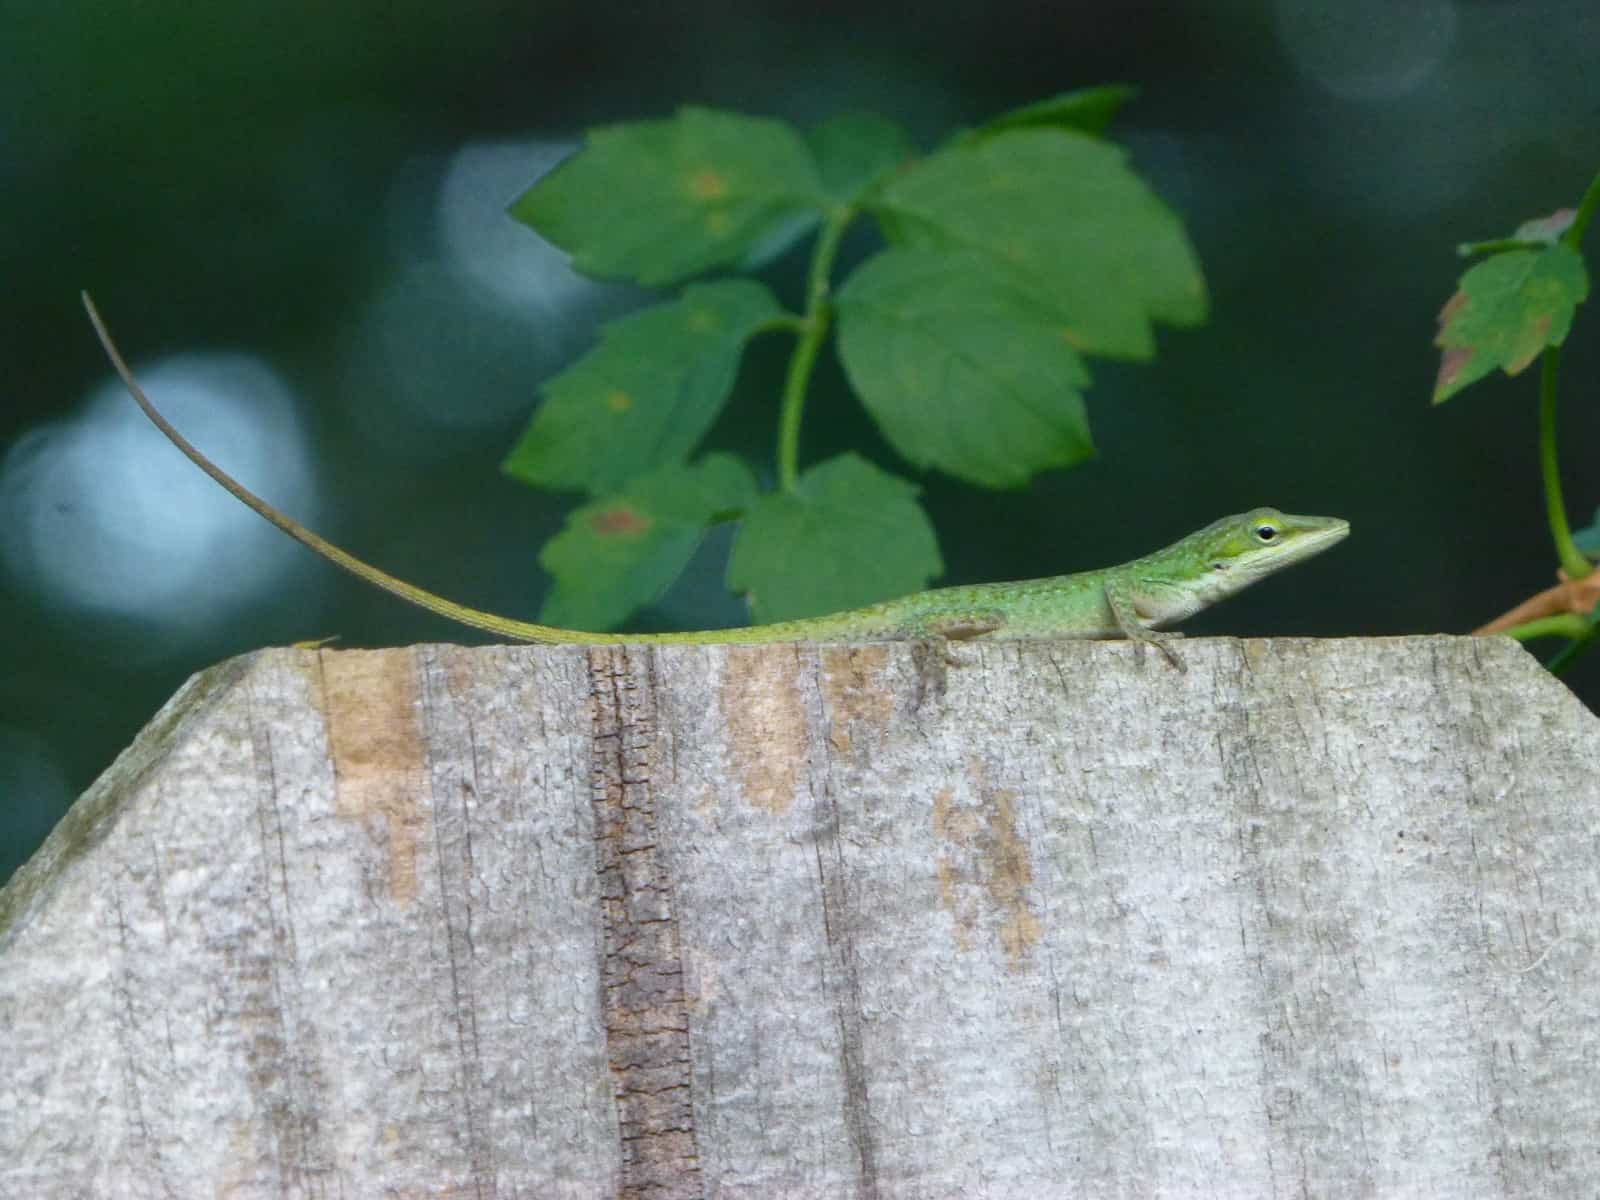 florida native green anole hunting on fence